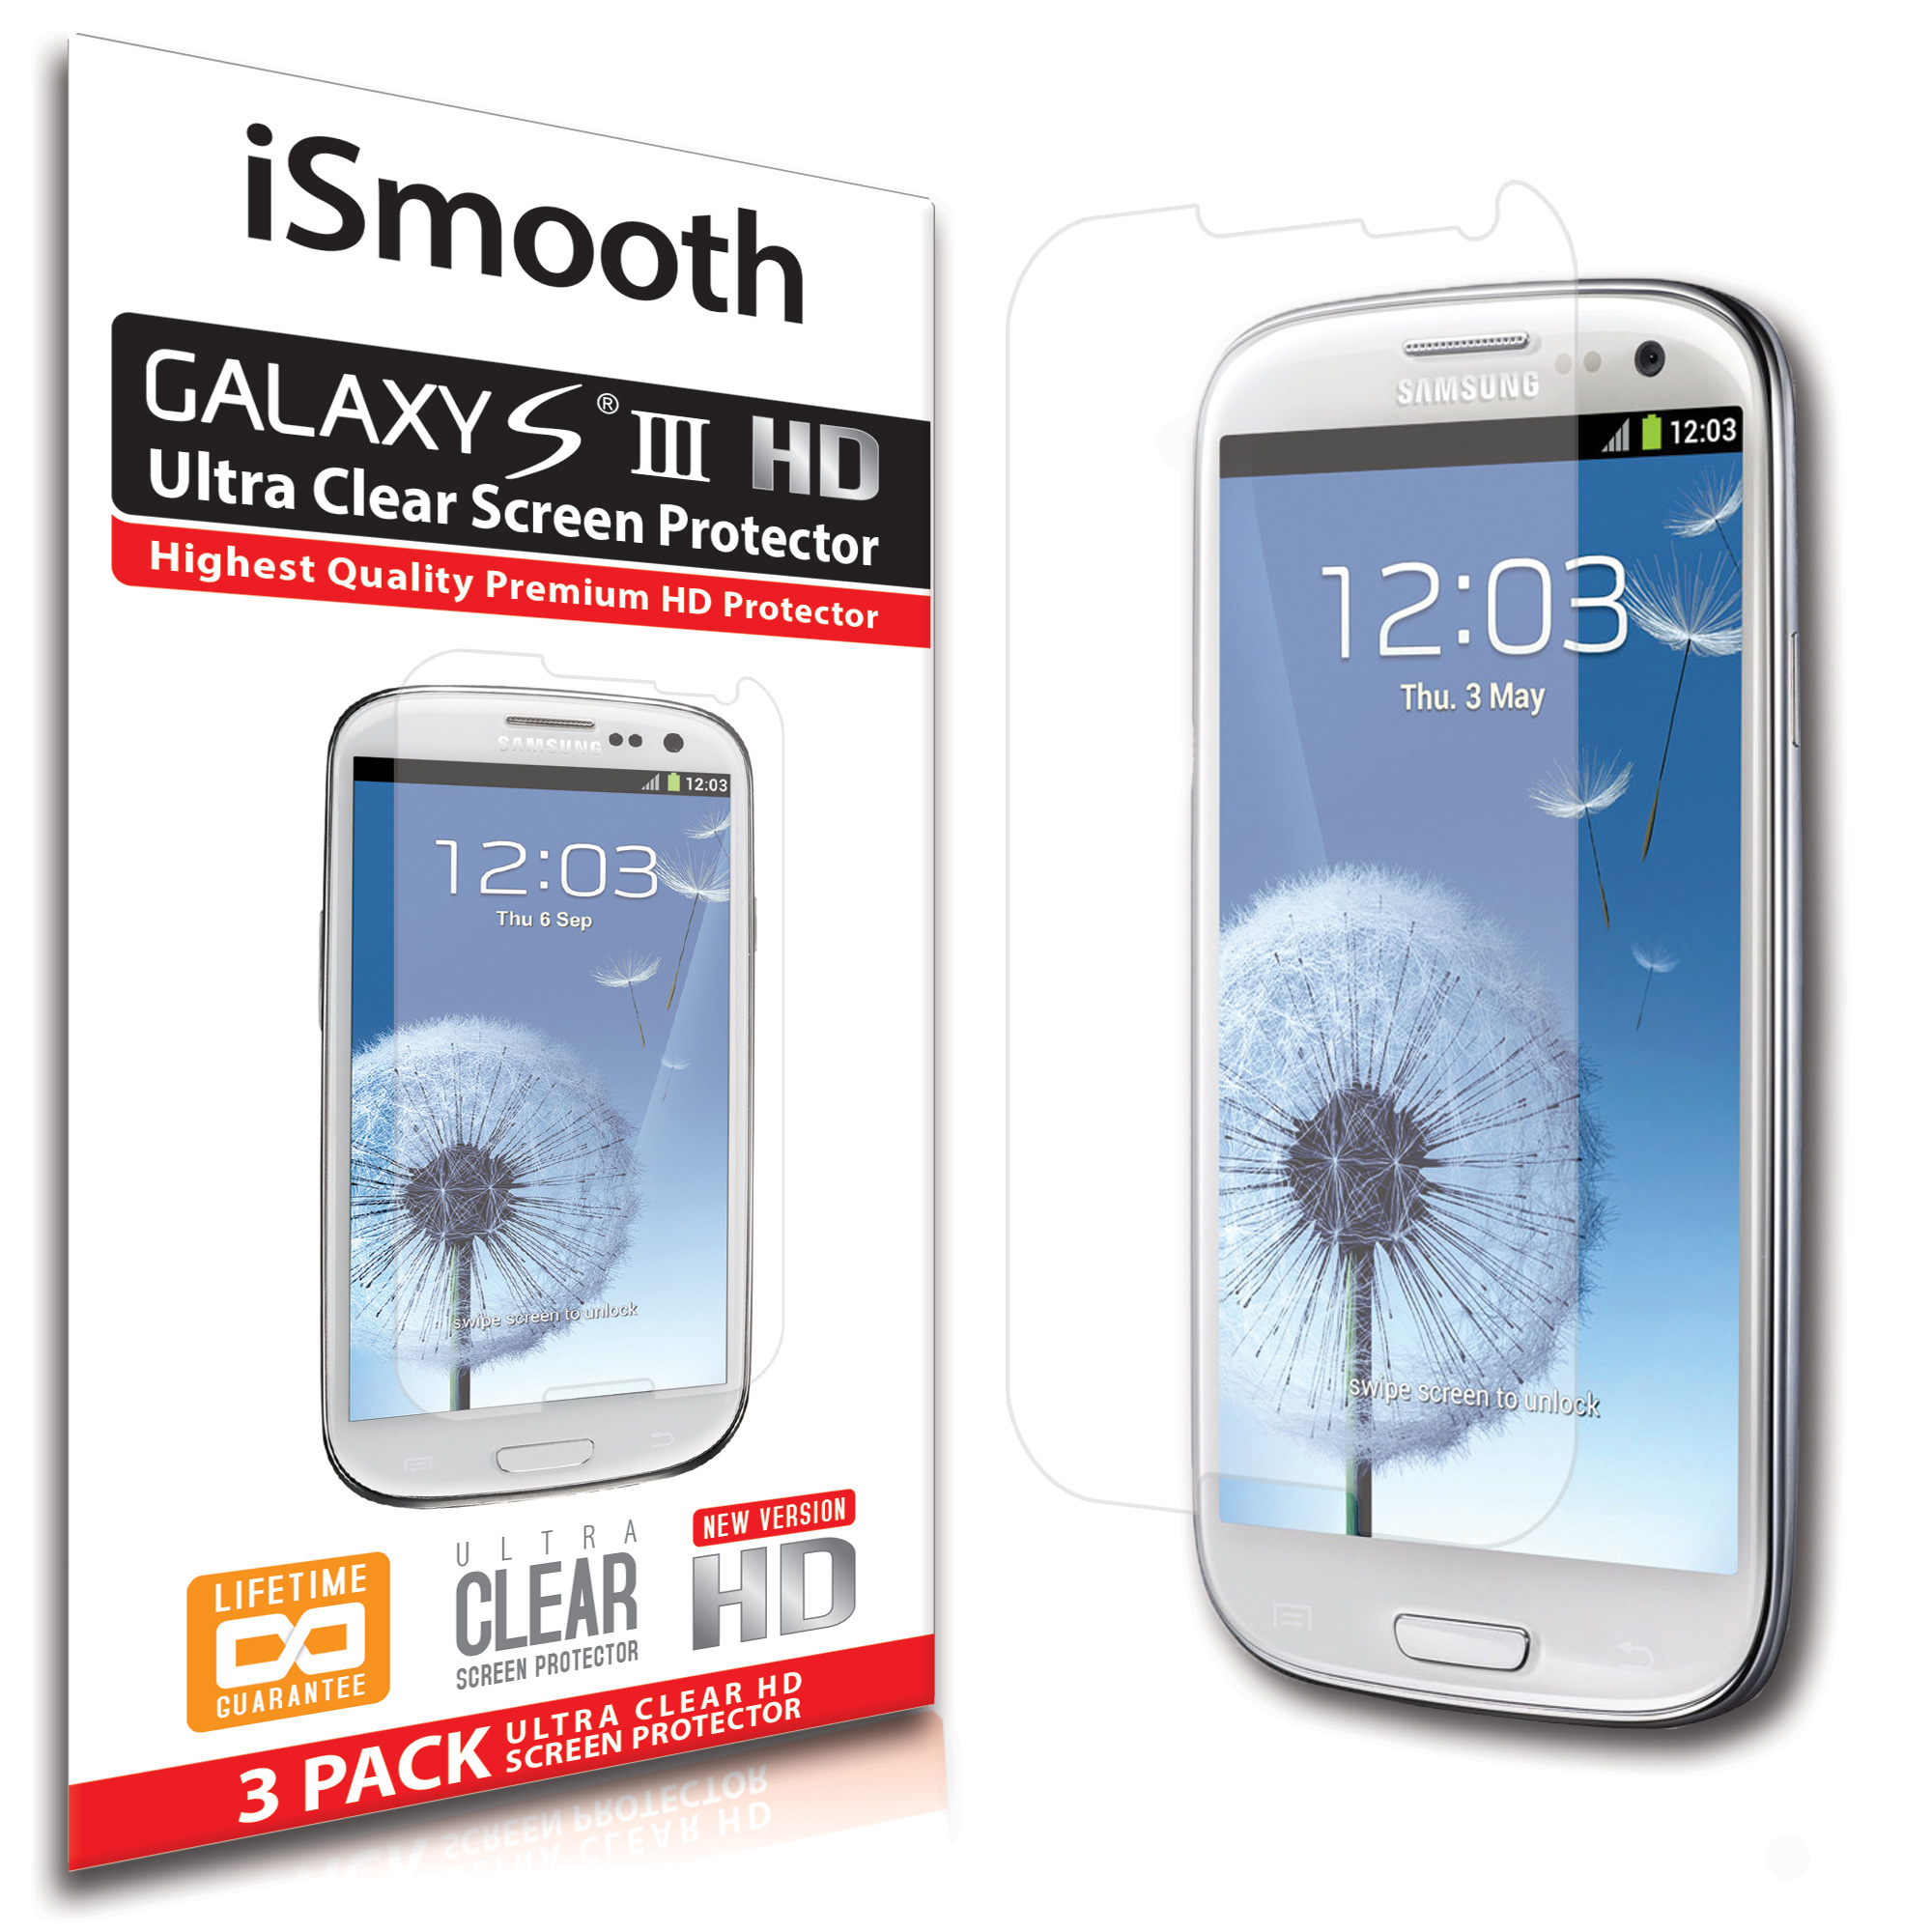 Lcd screen protector guard for samsung galaxy s3 i9300 galaxy s iii -  Galaxy S3 Screen Protector S3 Screen Protector View Larger